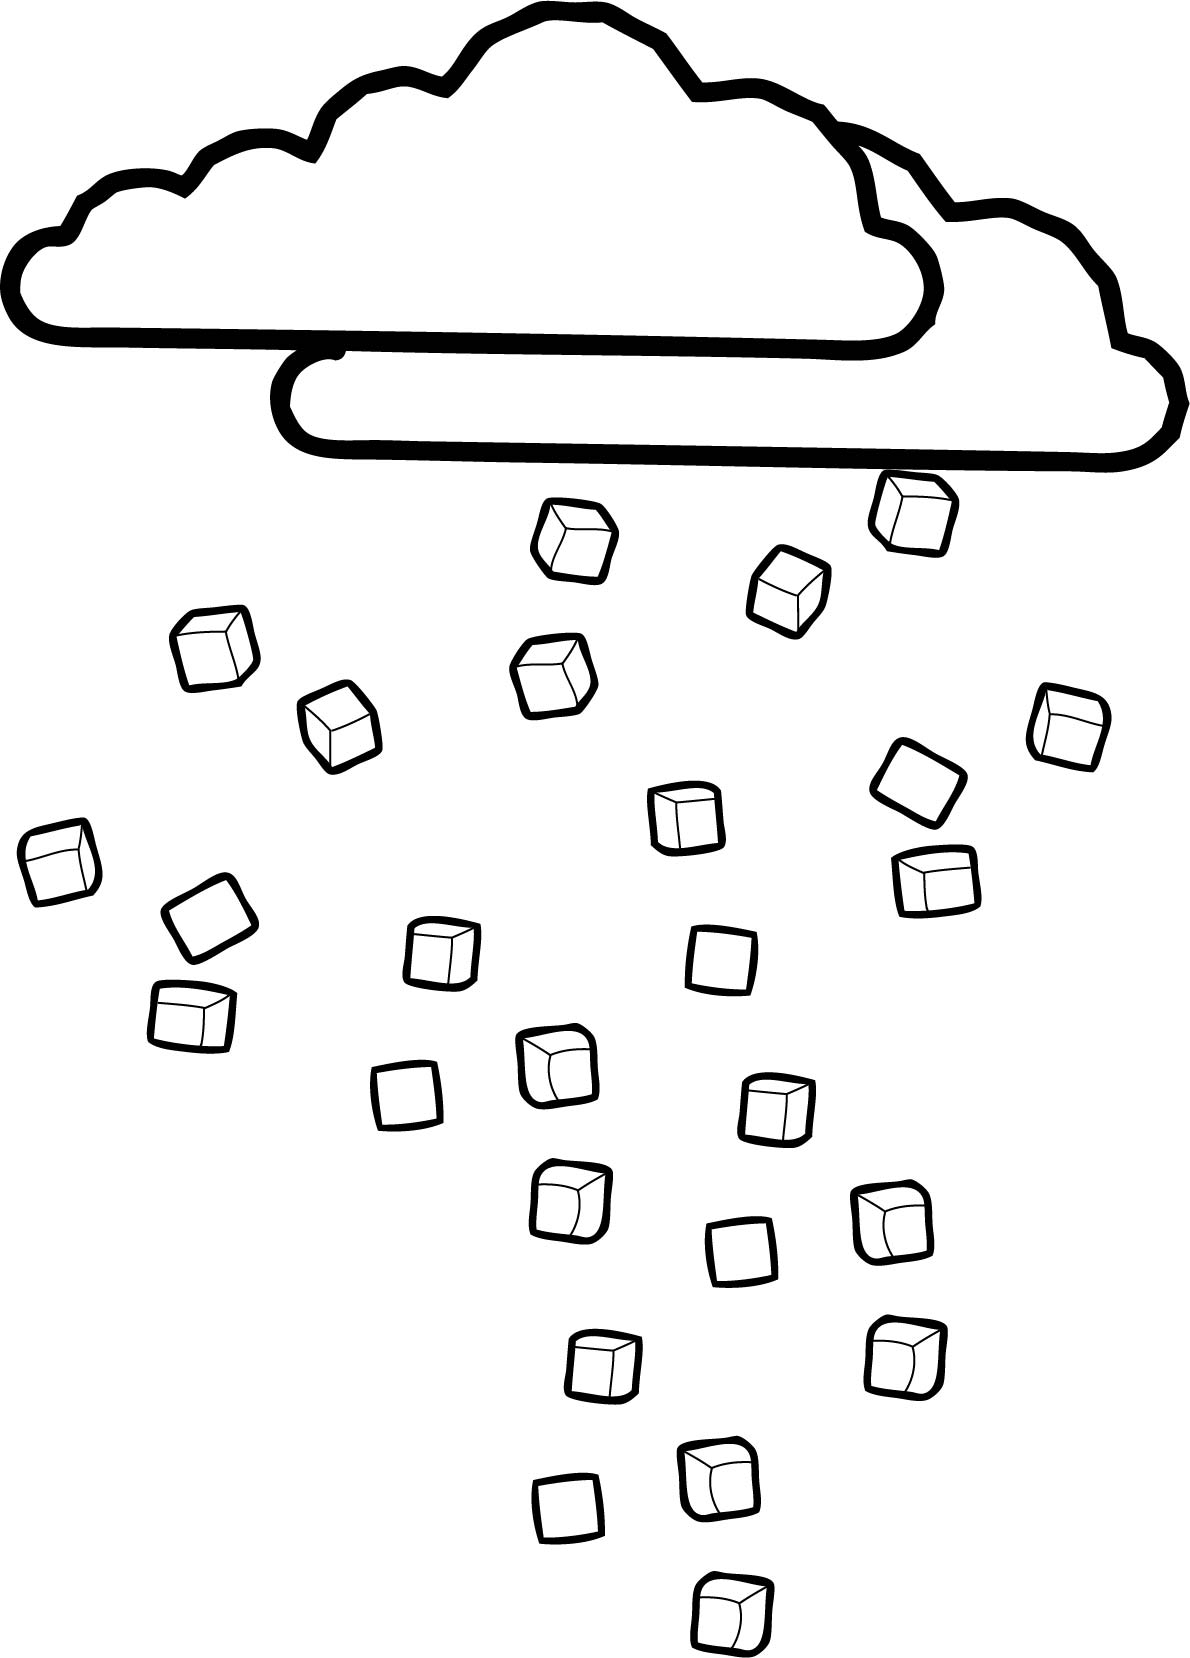 Cloudsice Coloring Page